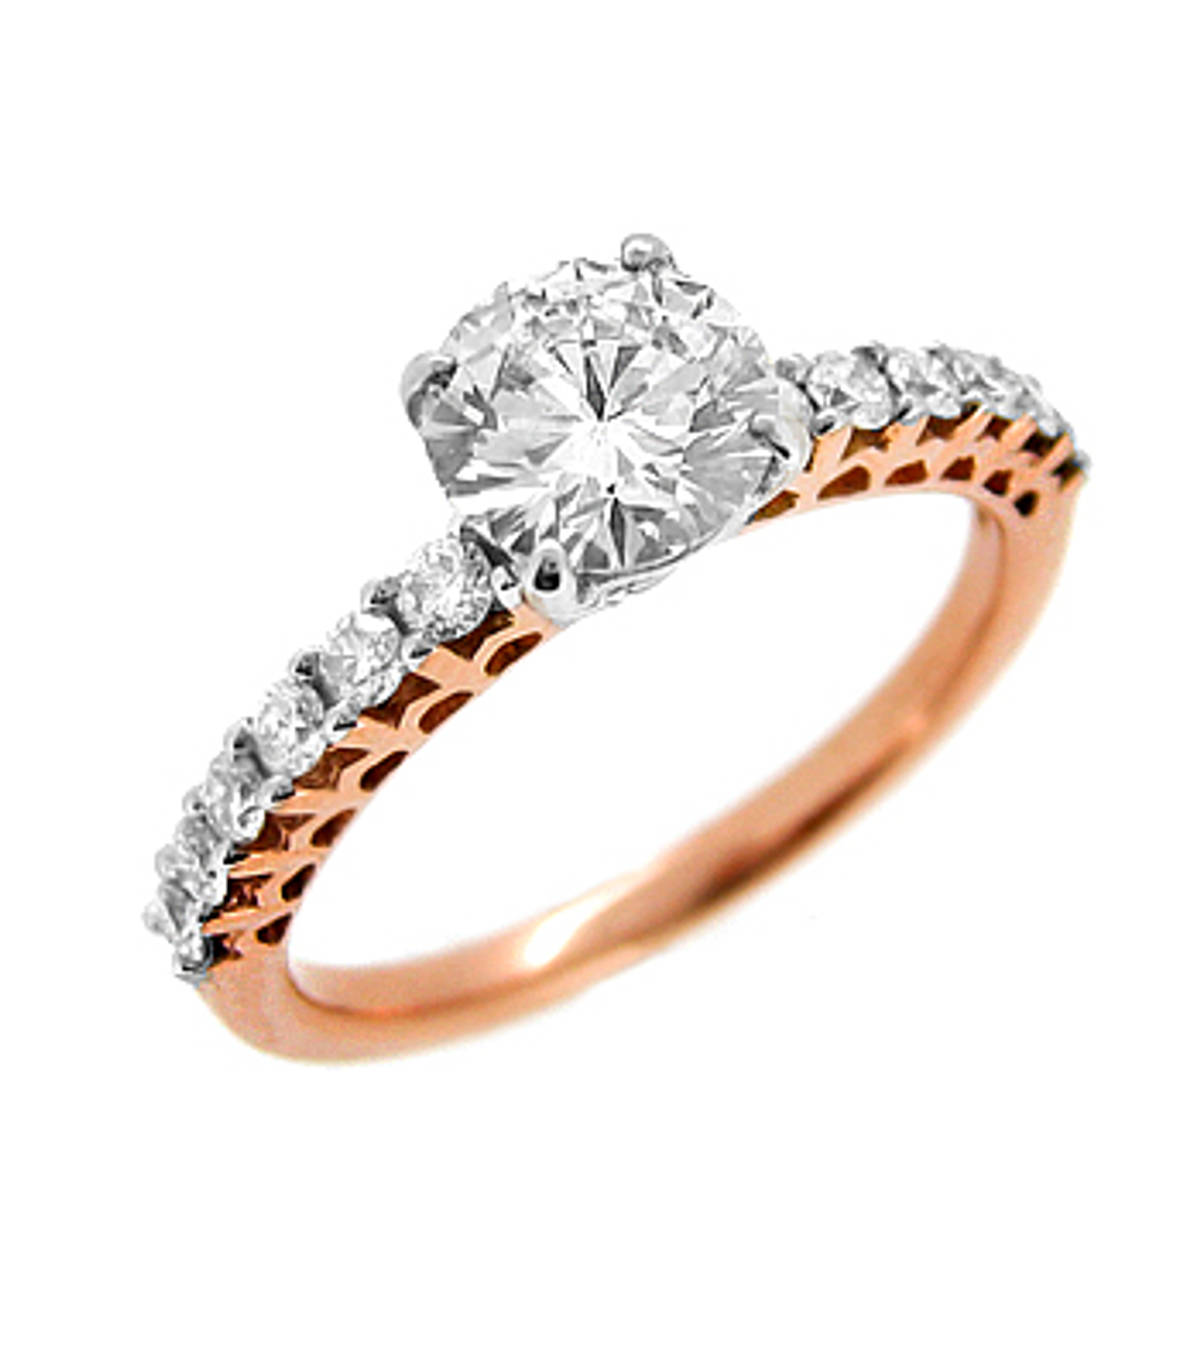 18 carat red gold and white golds/st brilliant cut diamond solitaire ring with diamond shoulderstotal diamond weight 0.97 carat